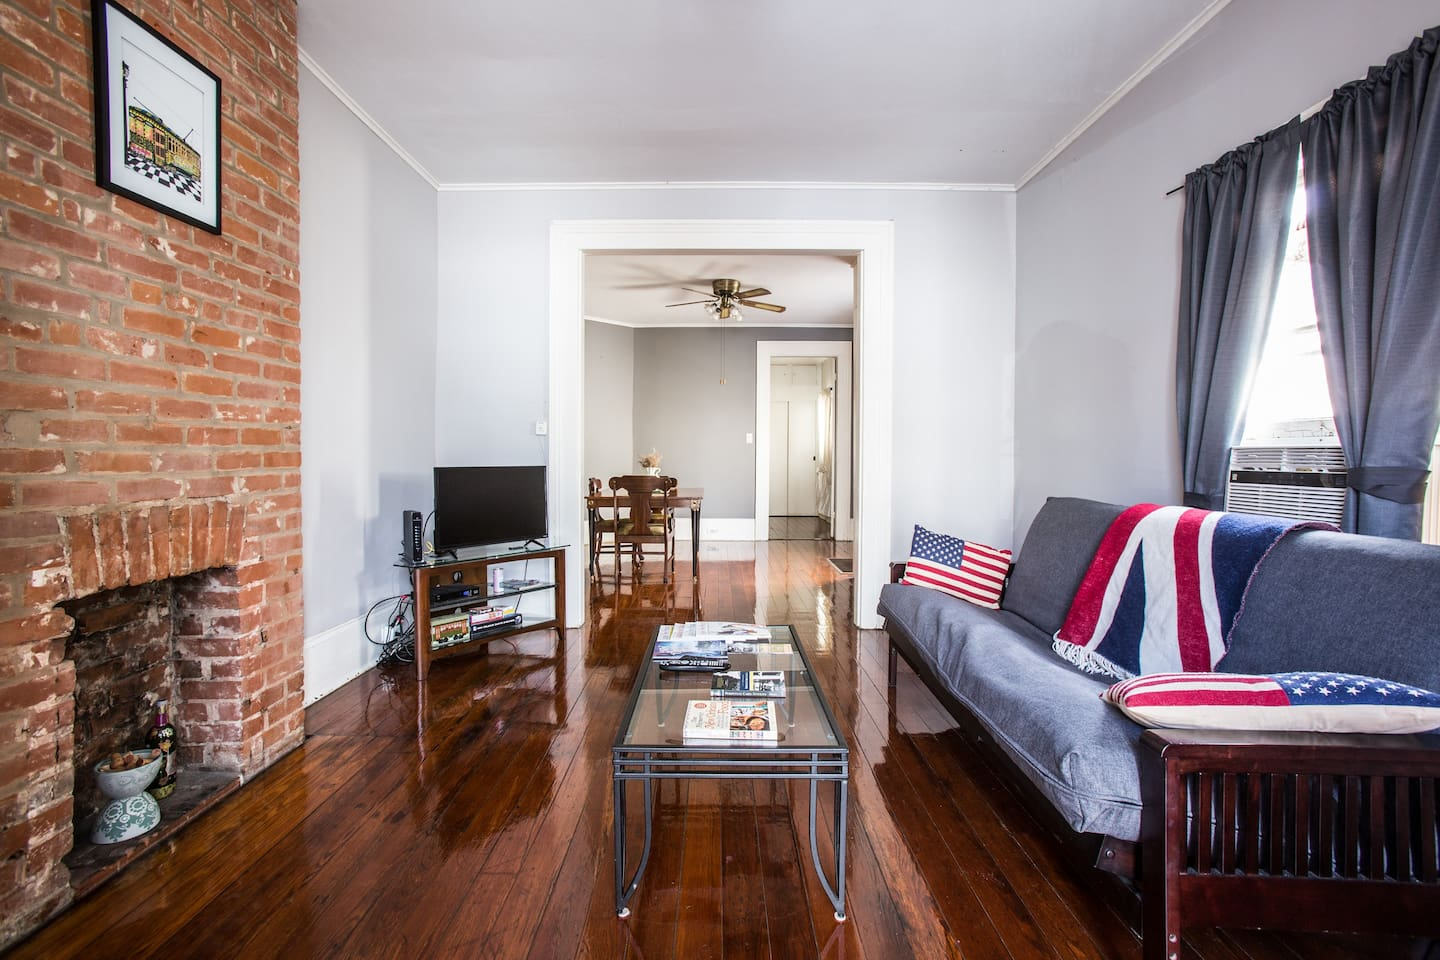 Bright and airy, old brick fireplace refinished and hardwood floors greet you when you walk in to this classic NOLA shotgun unit just 1/2 block from the St.Charles Avenue streetcar.